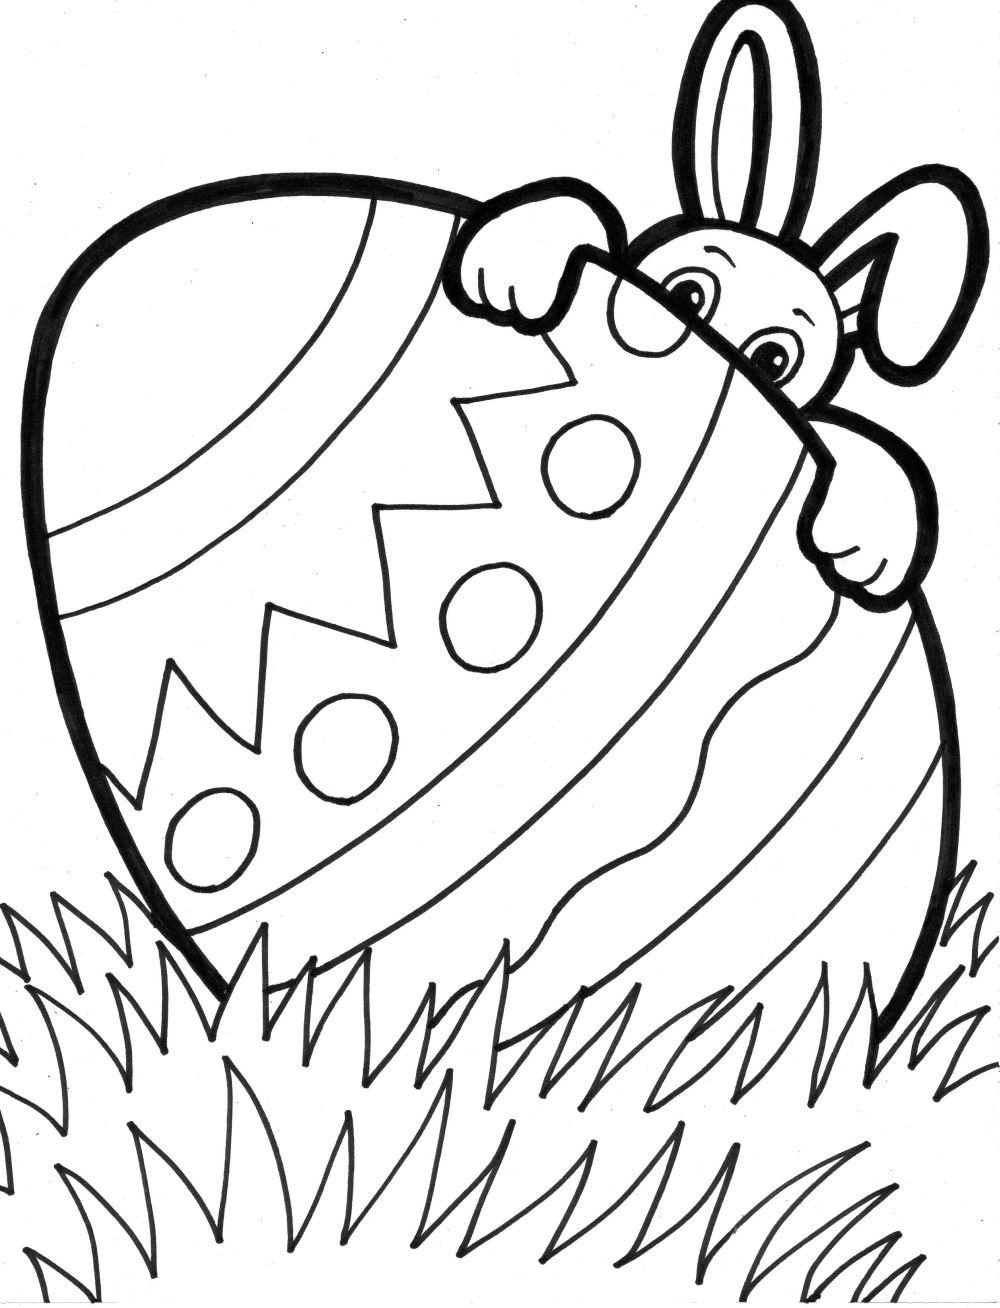 Printable Colouring In Pictures For Easter : Free Easter Printable Coloring Pages for Kids Easter Games and Activities Too